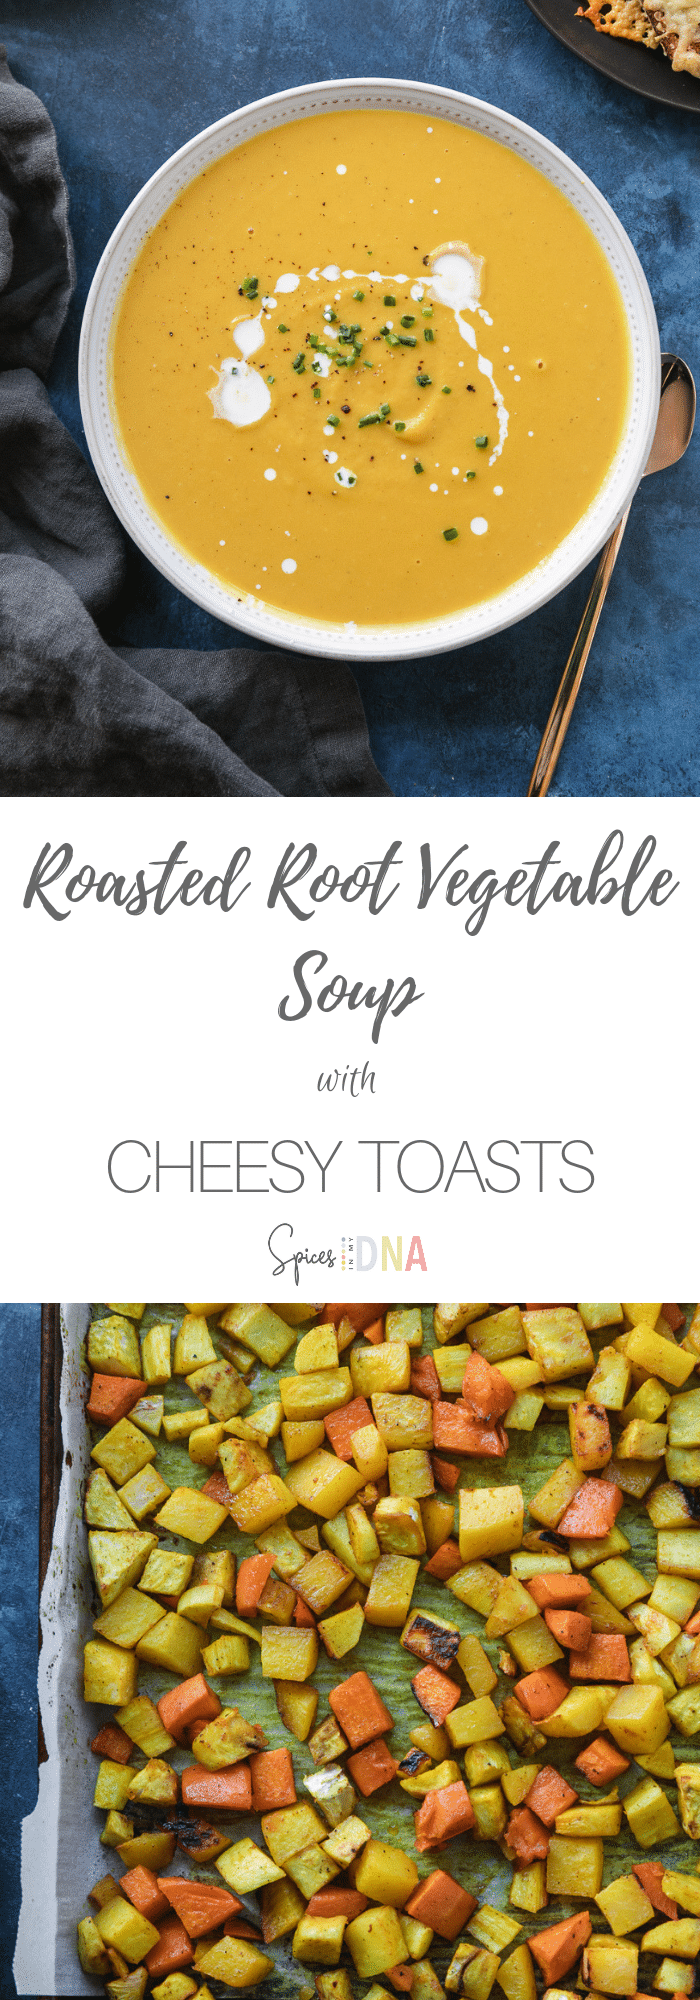 This Roasted Root Vegetable Soup with Cheesy Toasts is a comforting, simple meal to make when you're craving something cozy! It's filled with sweet potato, rutabaga, celery root, parsnips, a touch of honey for sweetness, and spices! The cheesy toasts are the most perfect accompaniment - I love using a seedy, grainy bread here! #roastedvegetables #rootvegetable #soup #toast #vegetarian #comfortfood